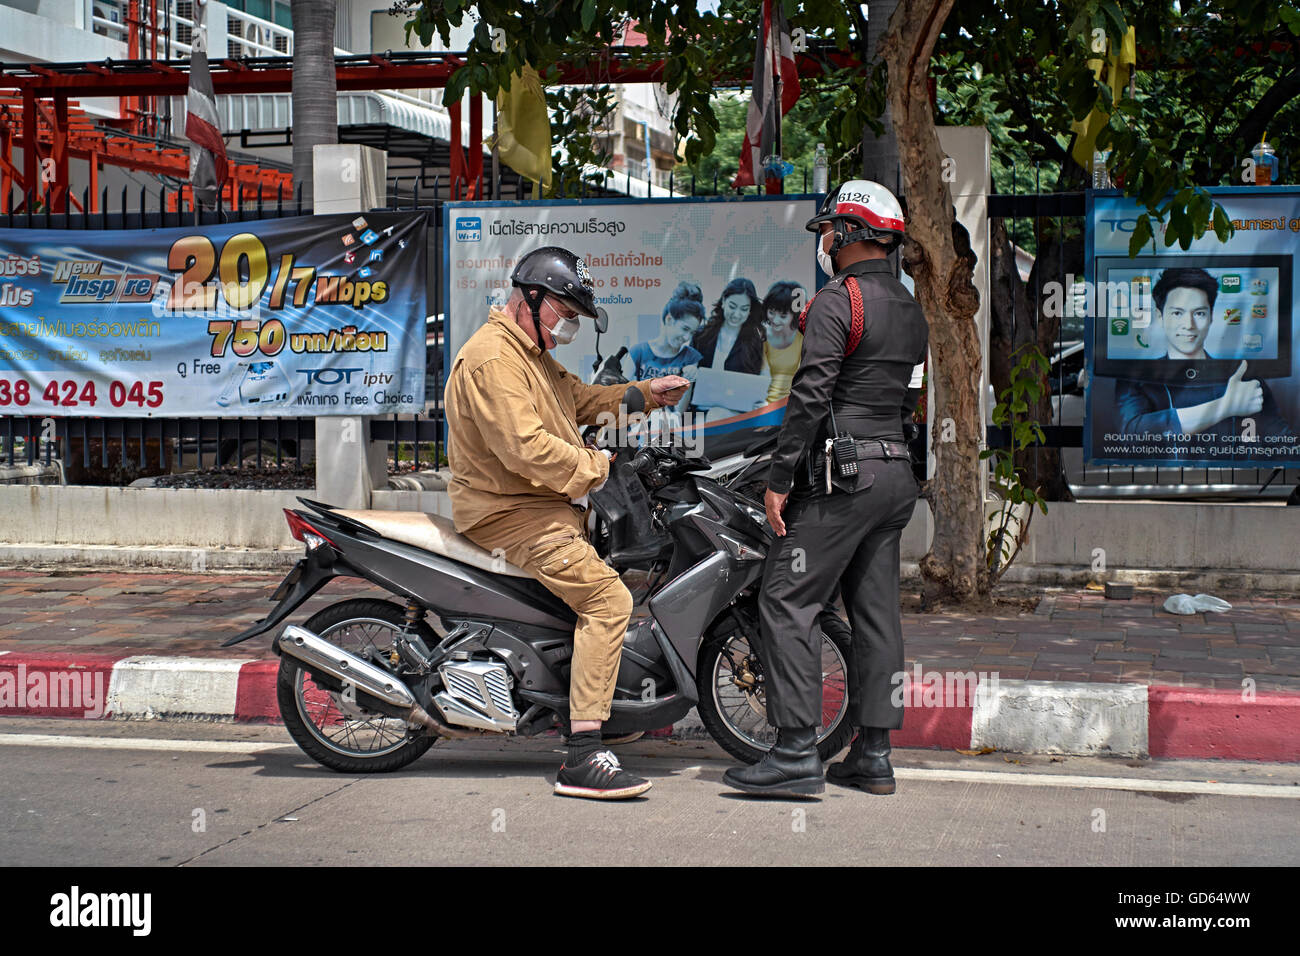 Motorcyclist stopped by Thai police officer for traffic violation. Thailand S. E. Asia - Stock Image